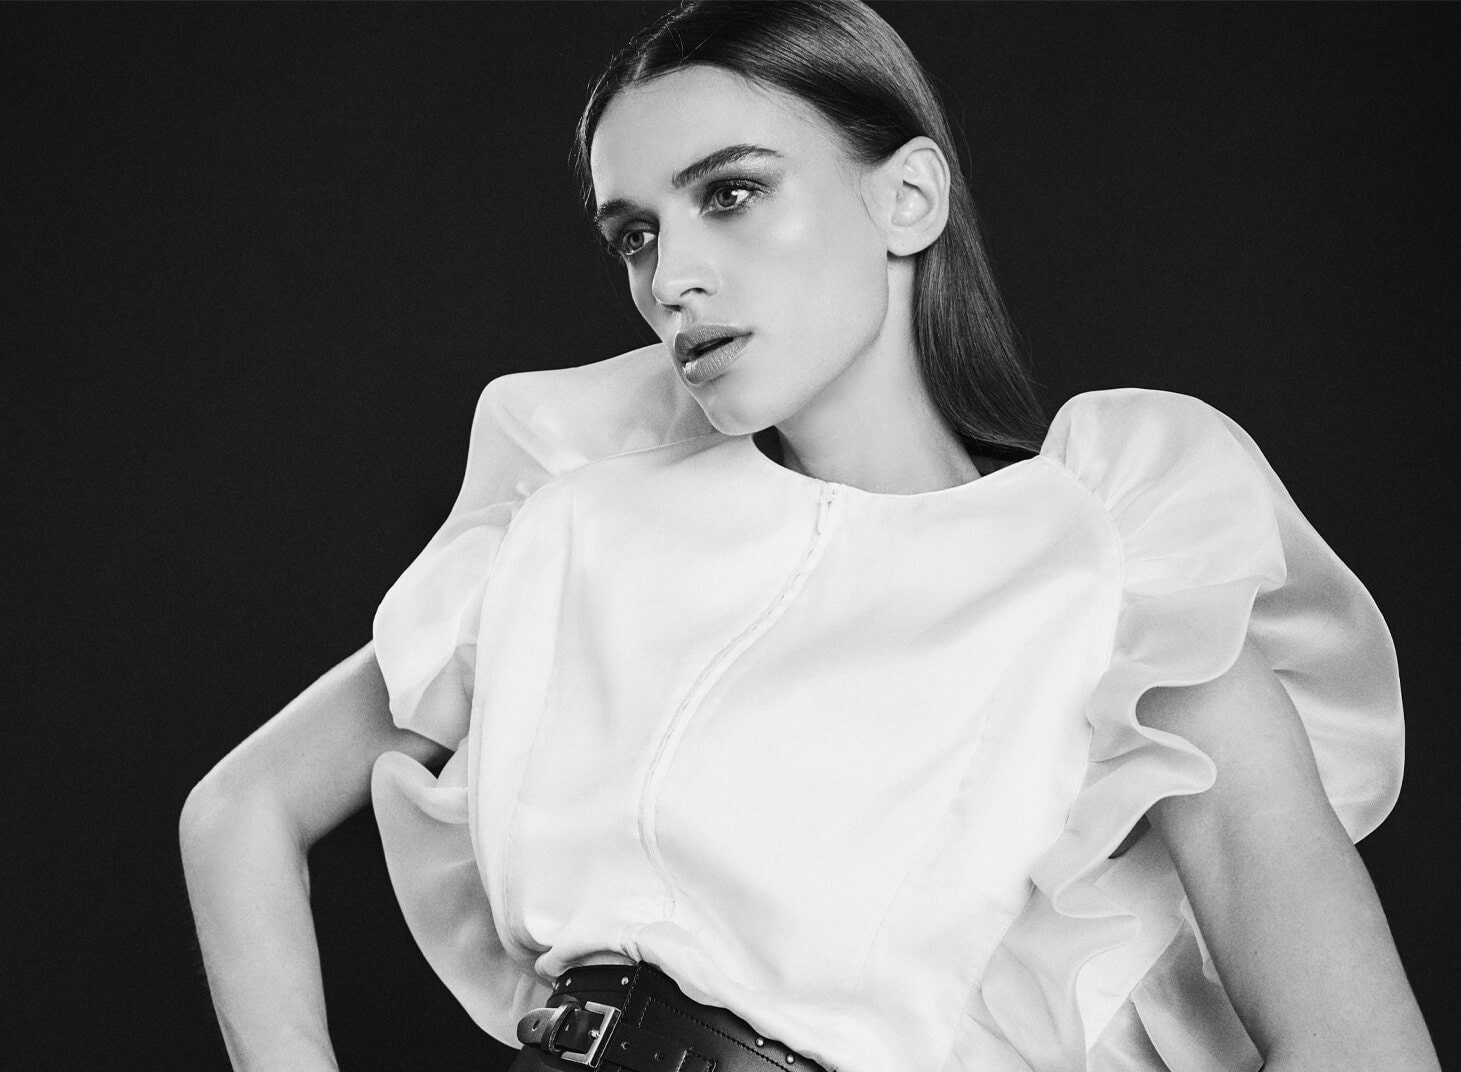 Explore the curated edit from designer Anne Fontaine featuring exquisite styling to prepare you for your next night out